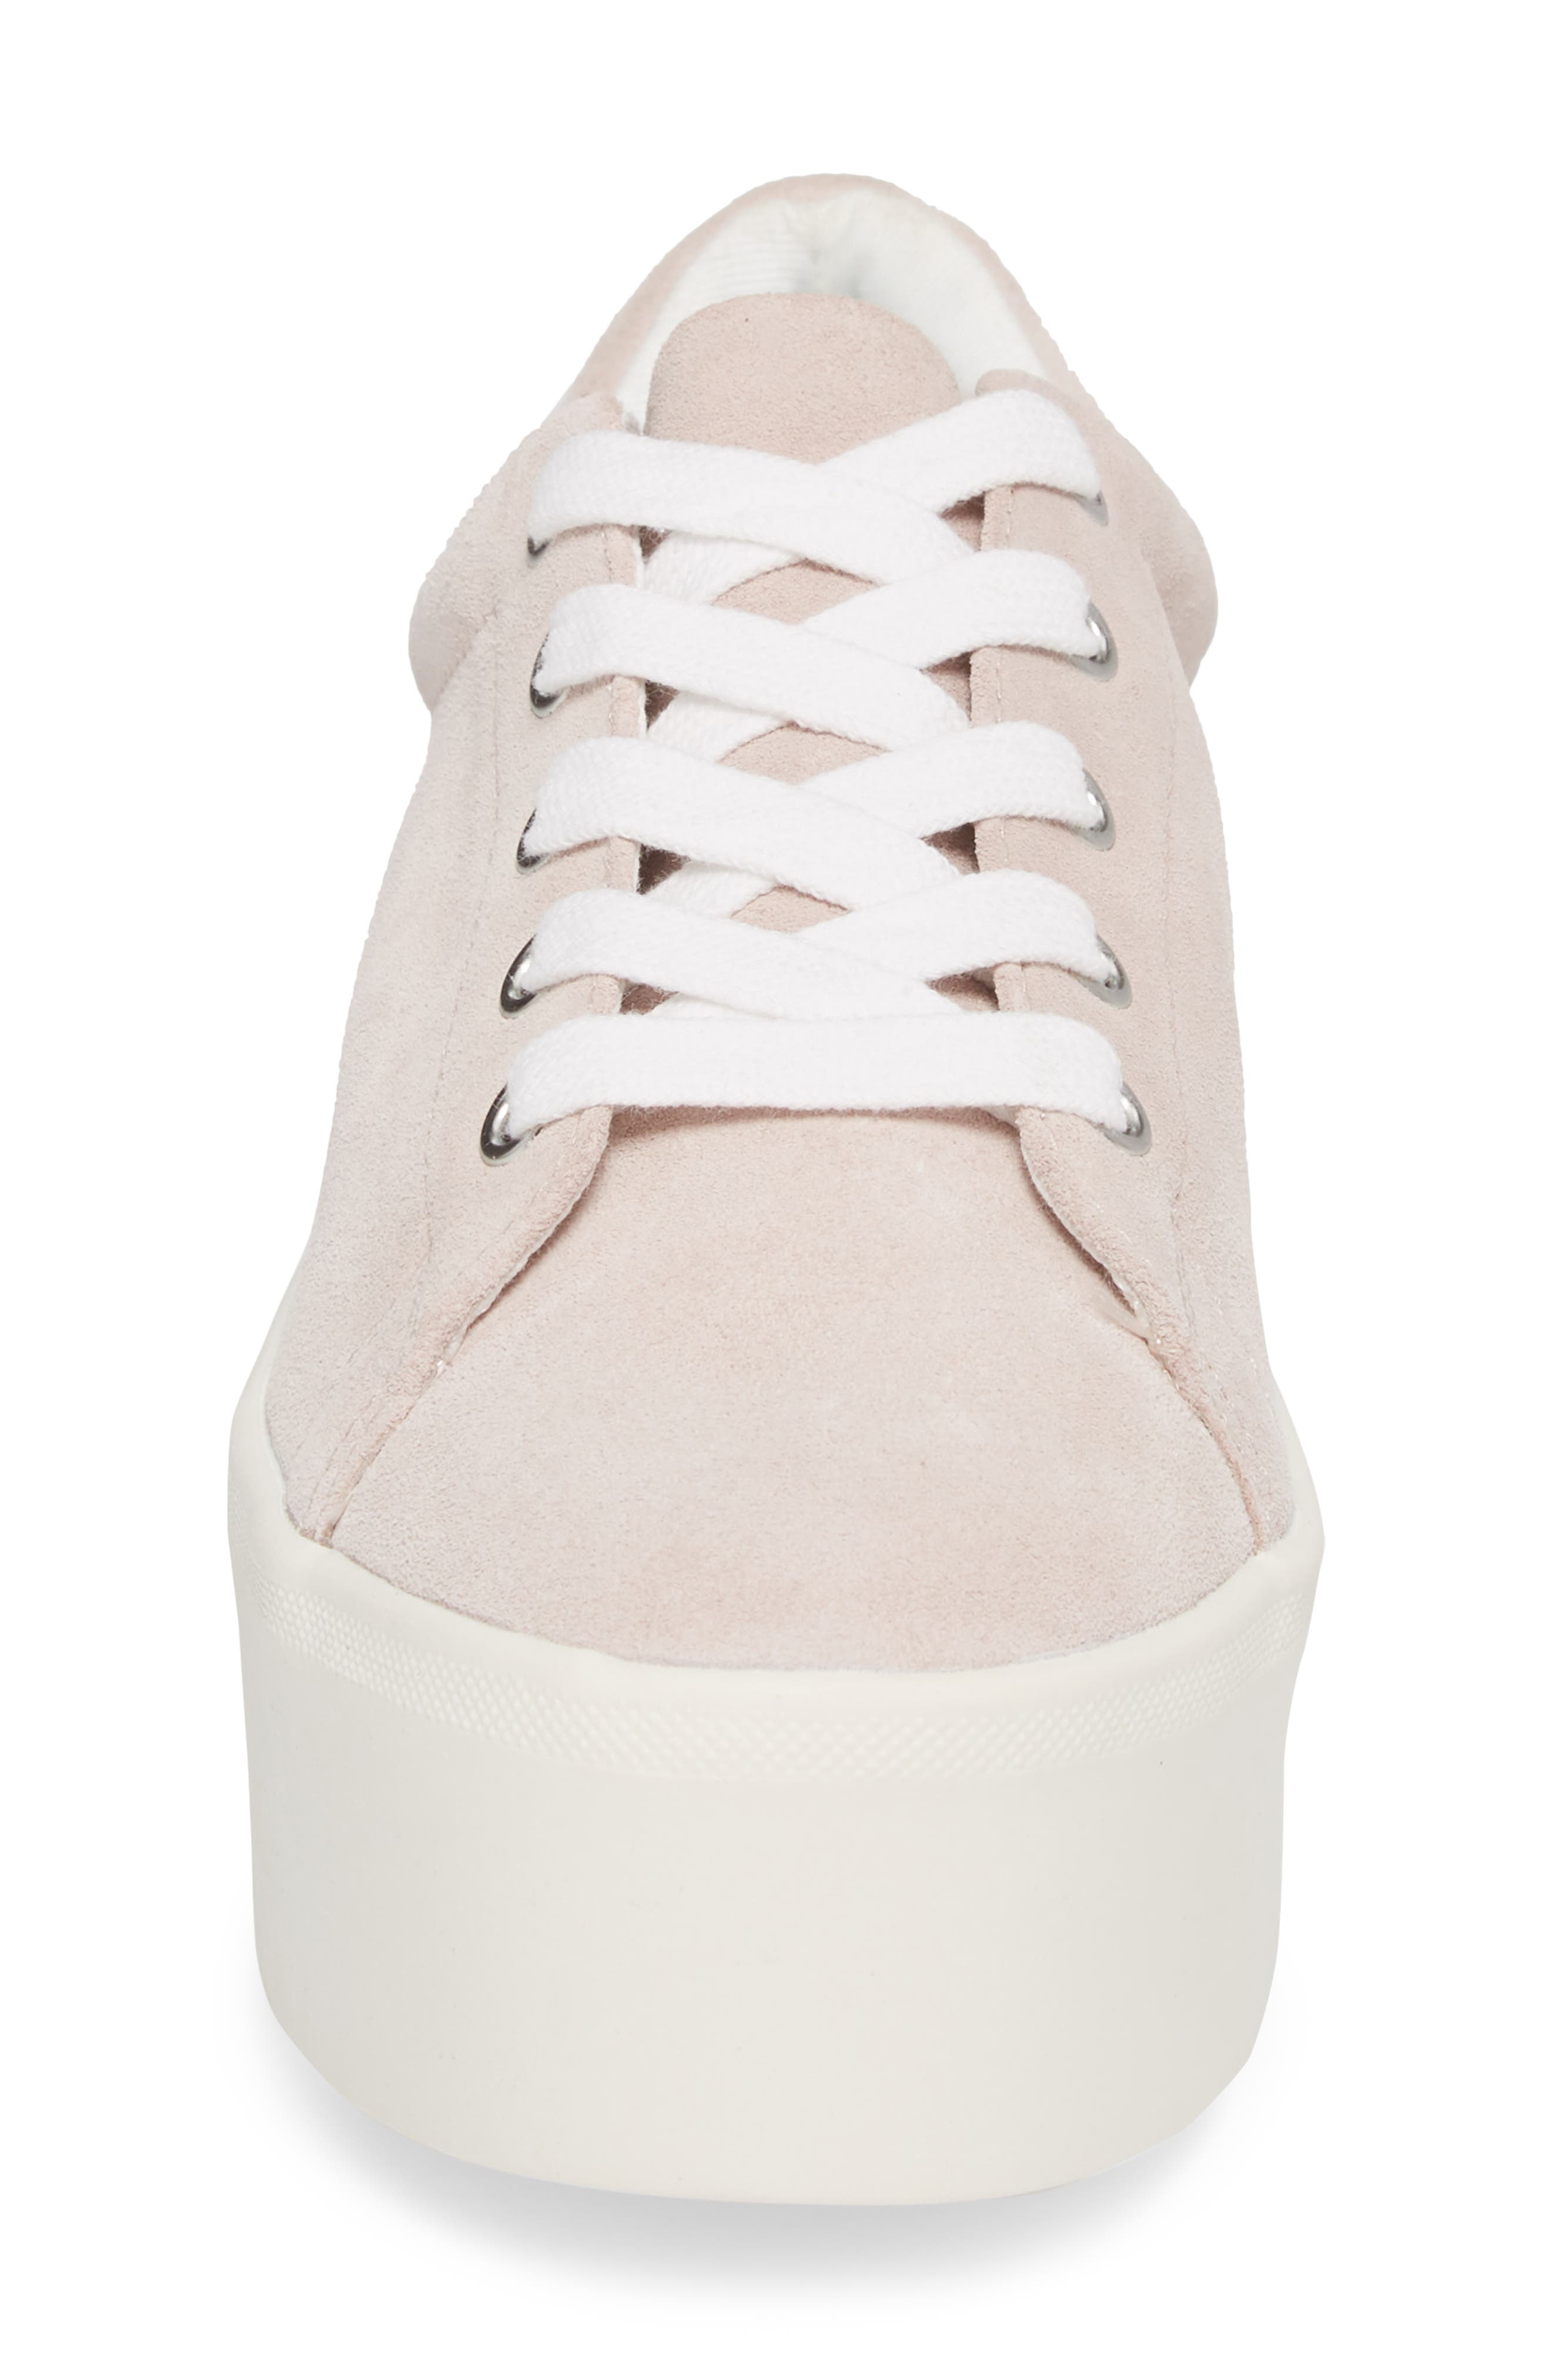 Palmer Sneaker,                             Alternate thumbnail 4, color,                             Pink Suede